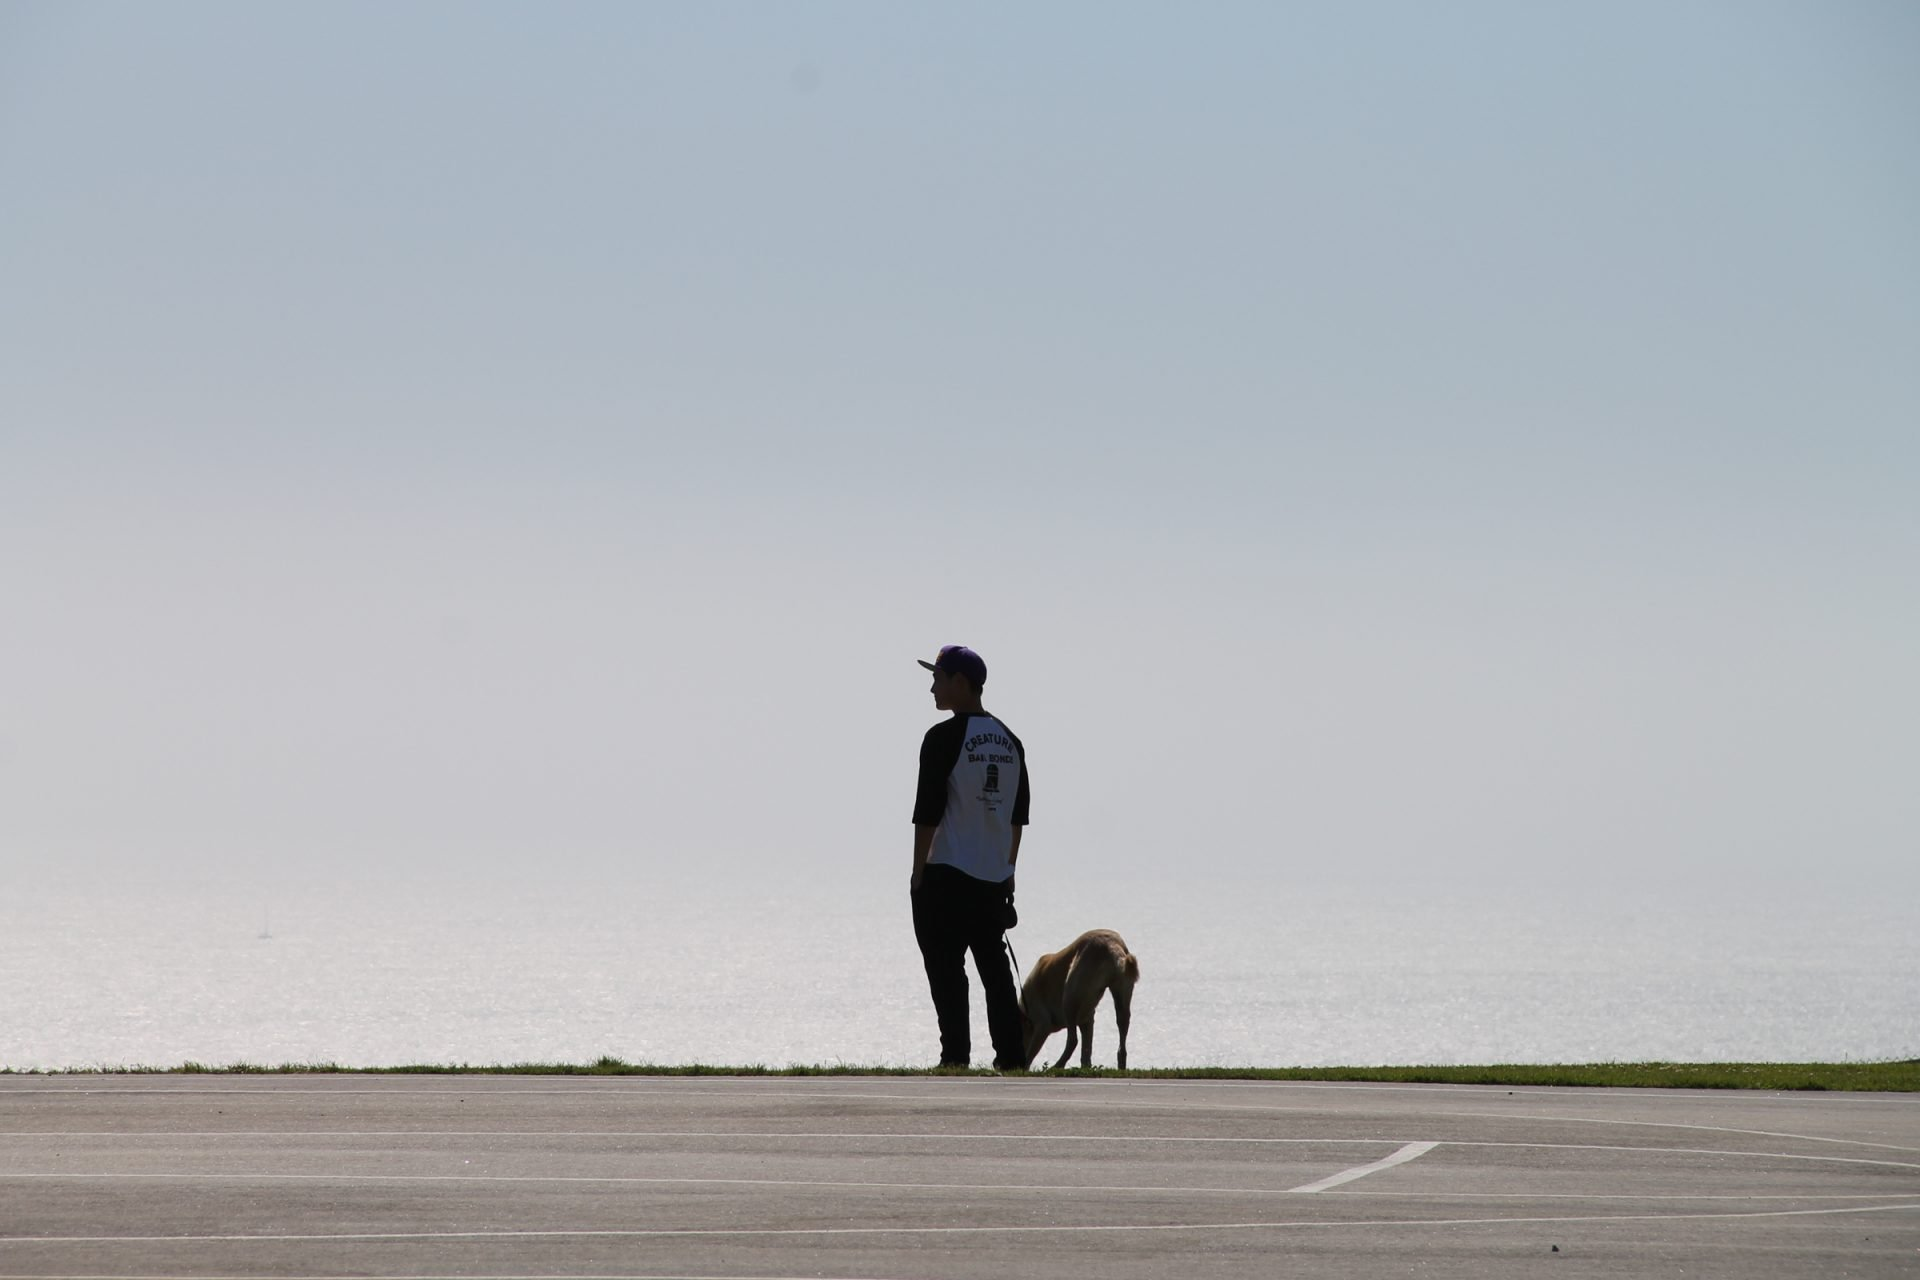 Silhouette of Man with Dog